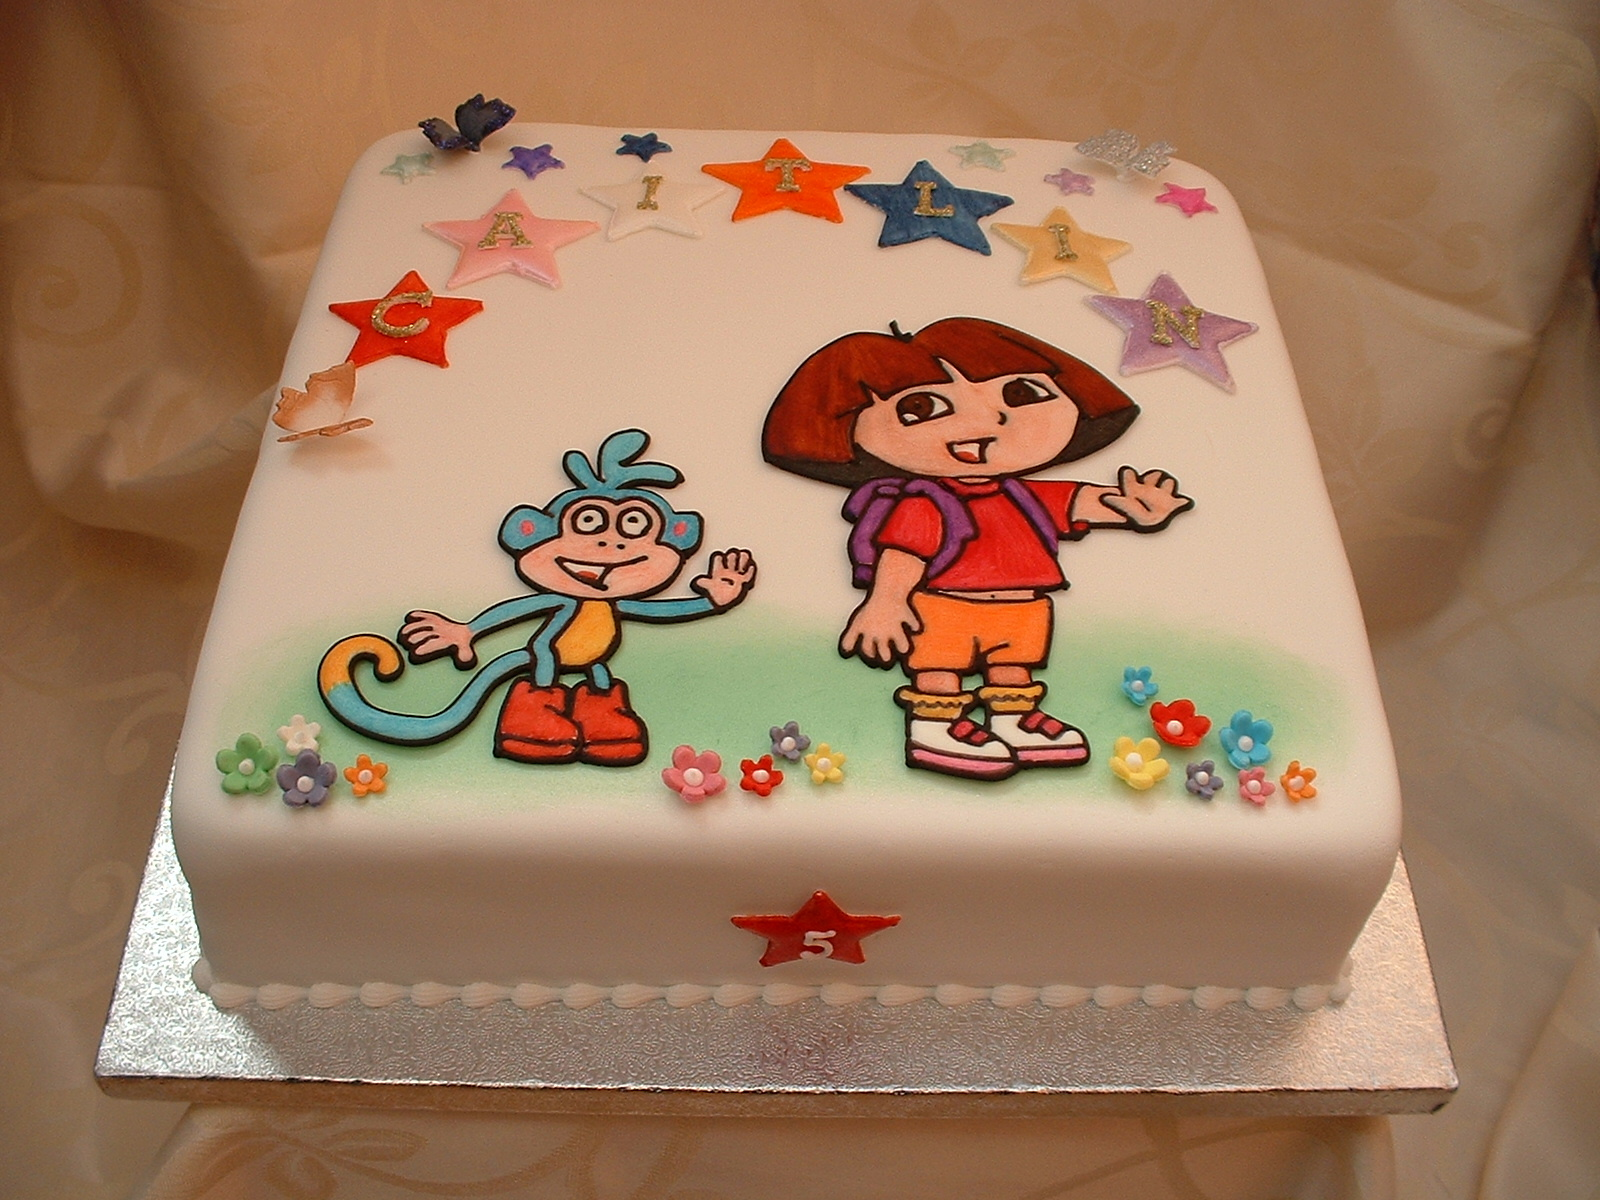 Awe Inspiring Dora Cakes Decoration Ideas Little Birthday Cakes Personalised Birthday Cards Veneteletsinfo